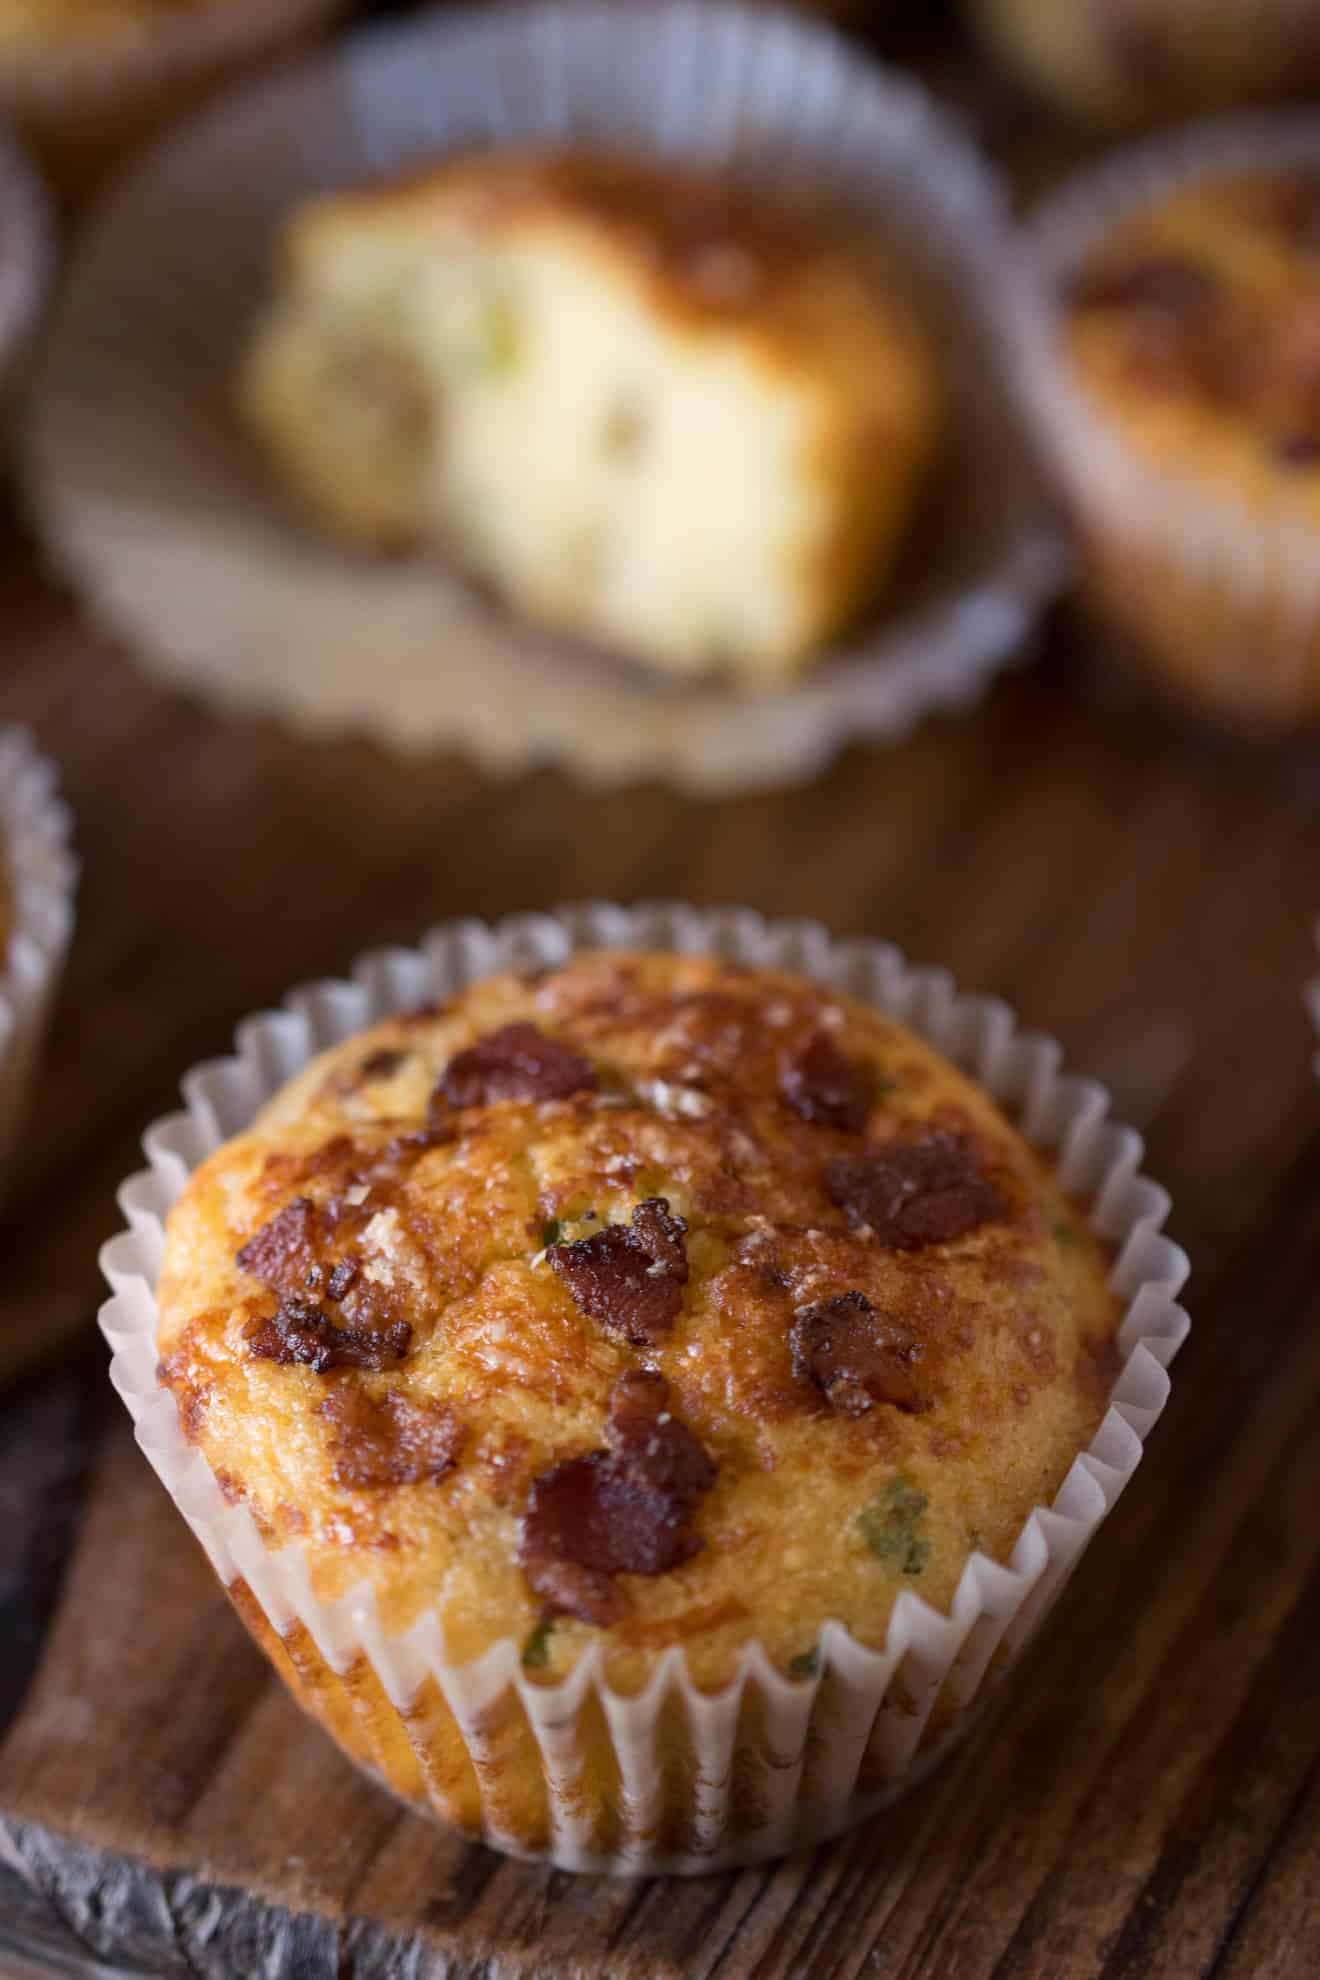 A closeup showing the bacon topping on the muffin